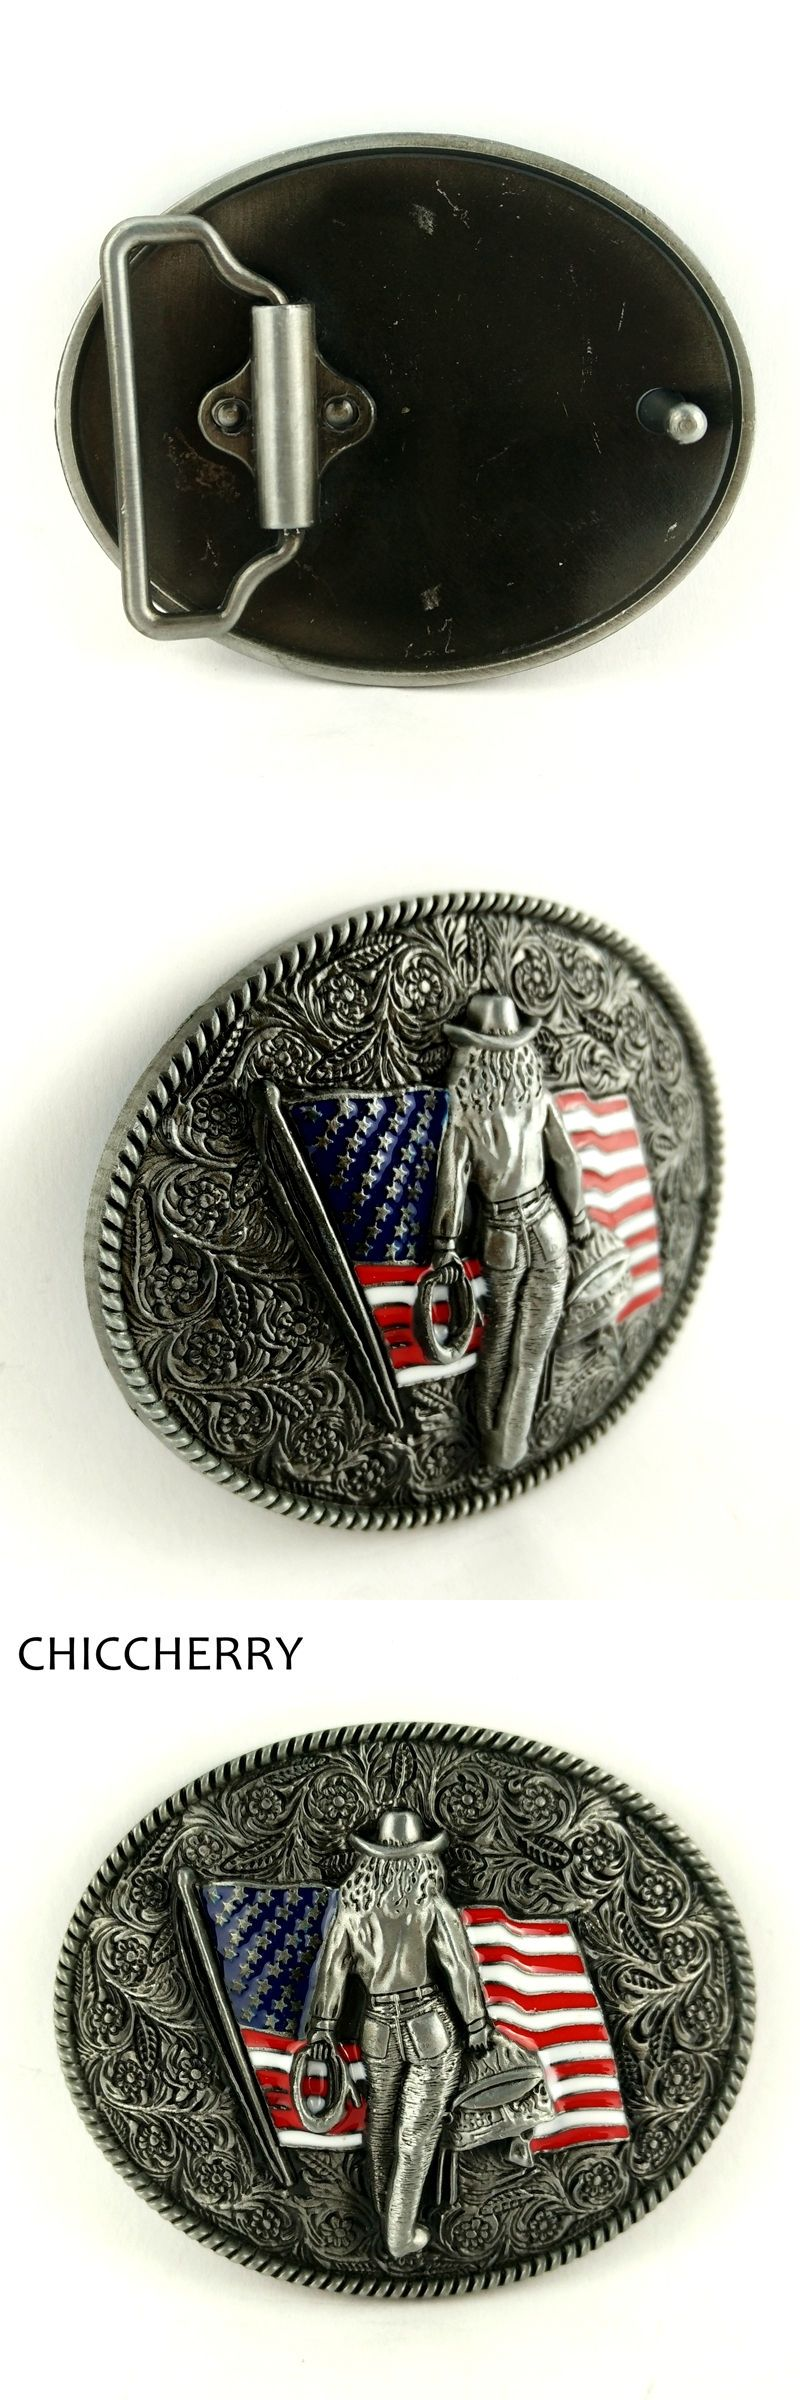 f1f688e2f941 Cool Male Accessories Vintage Floral American Flag Belt Buckles Metal  Western Country Cowboy Boucle De Ceinture